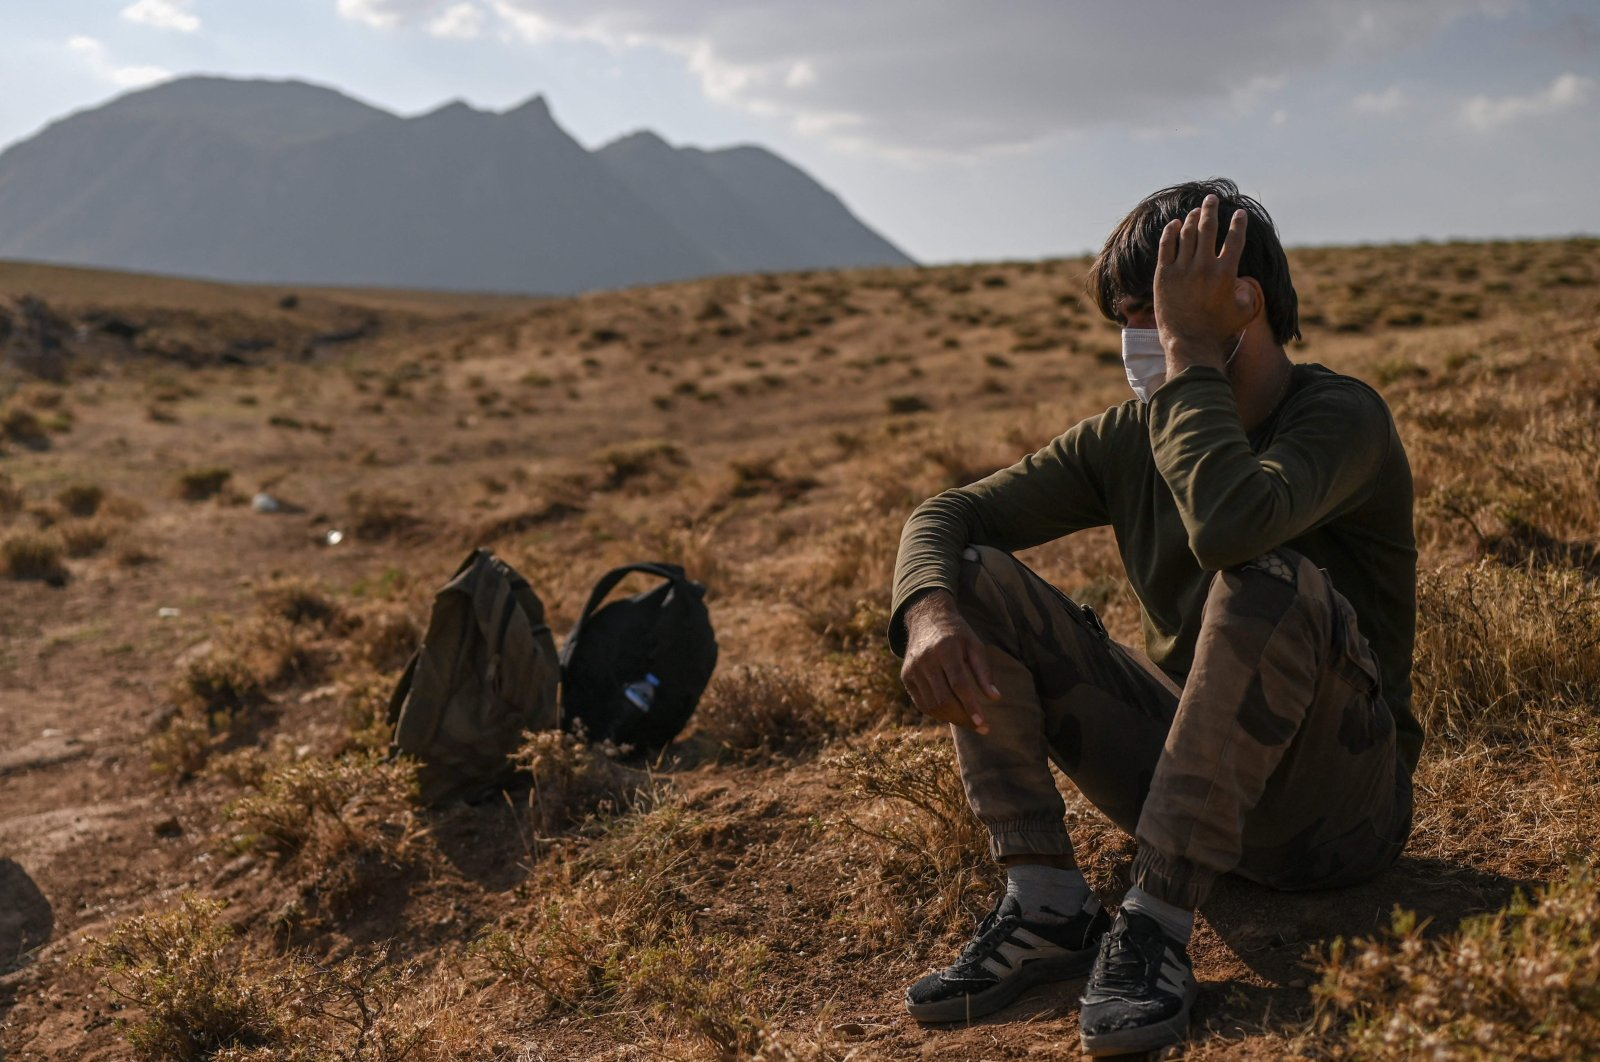 An Afghan migrant rests while waiting for transport by smugglers after crossing the Iran-Turkish border on Aug. 15, 2021, in Tatvan, on the western shores of Lake Van, eastern Turkey. (AFP Photo)